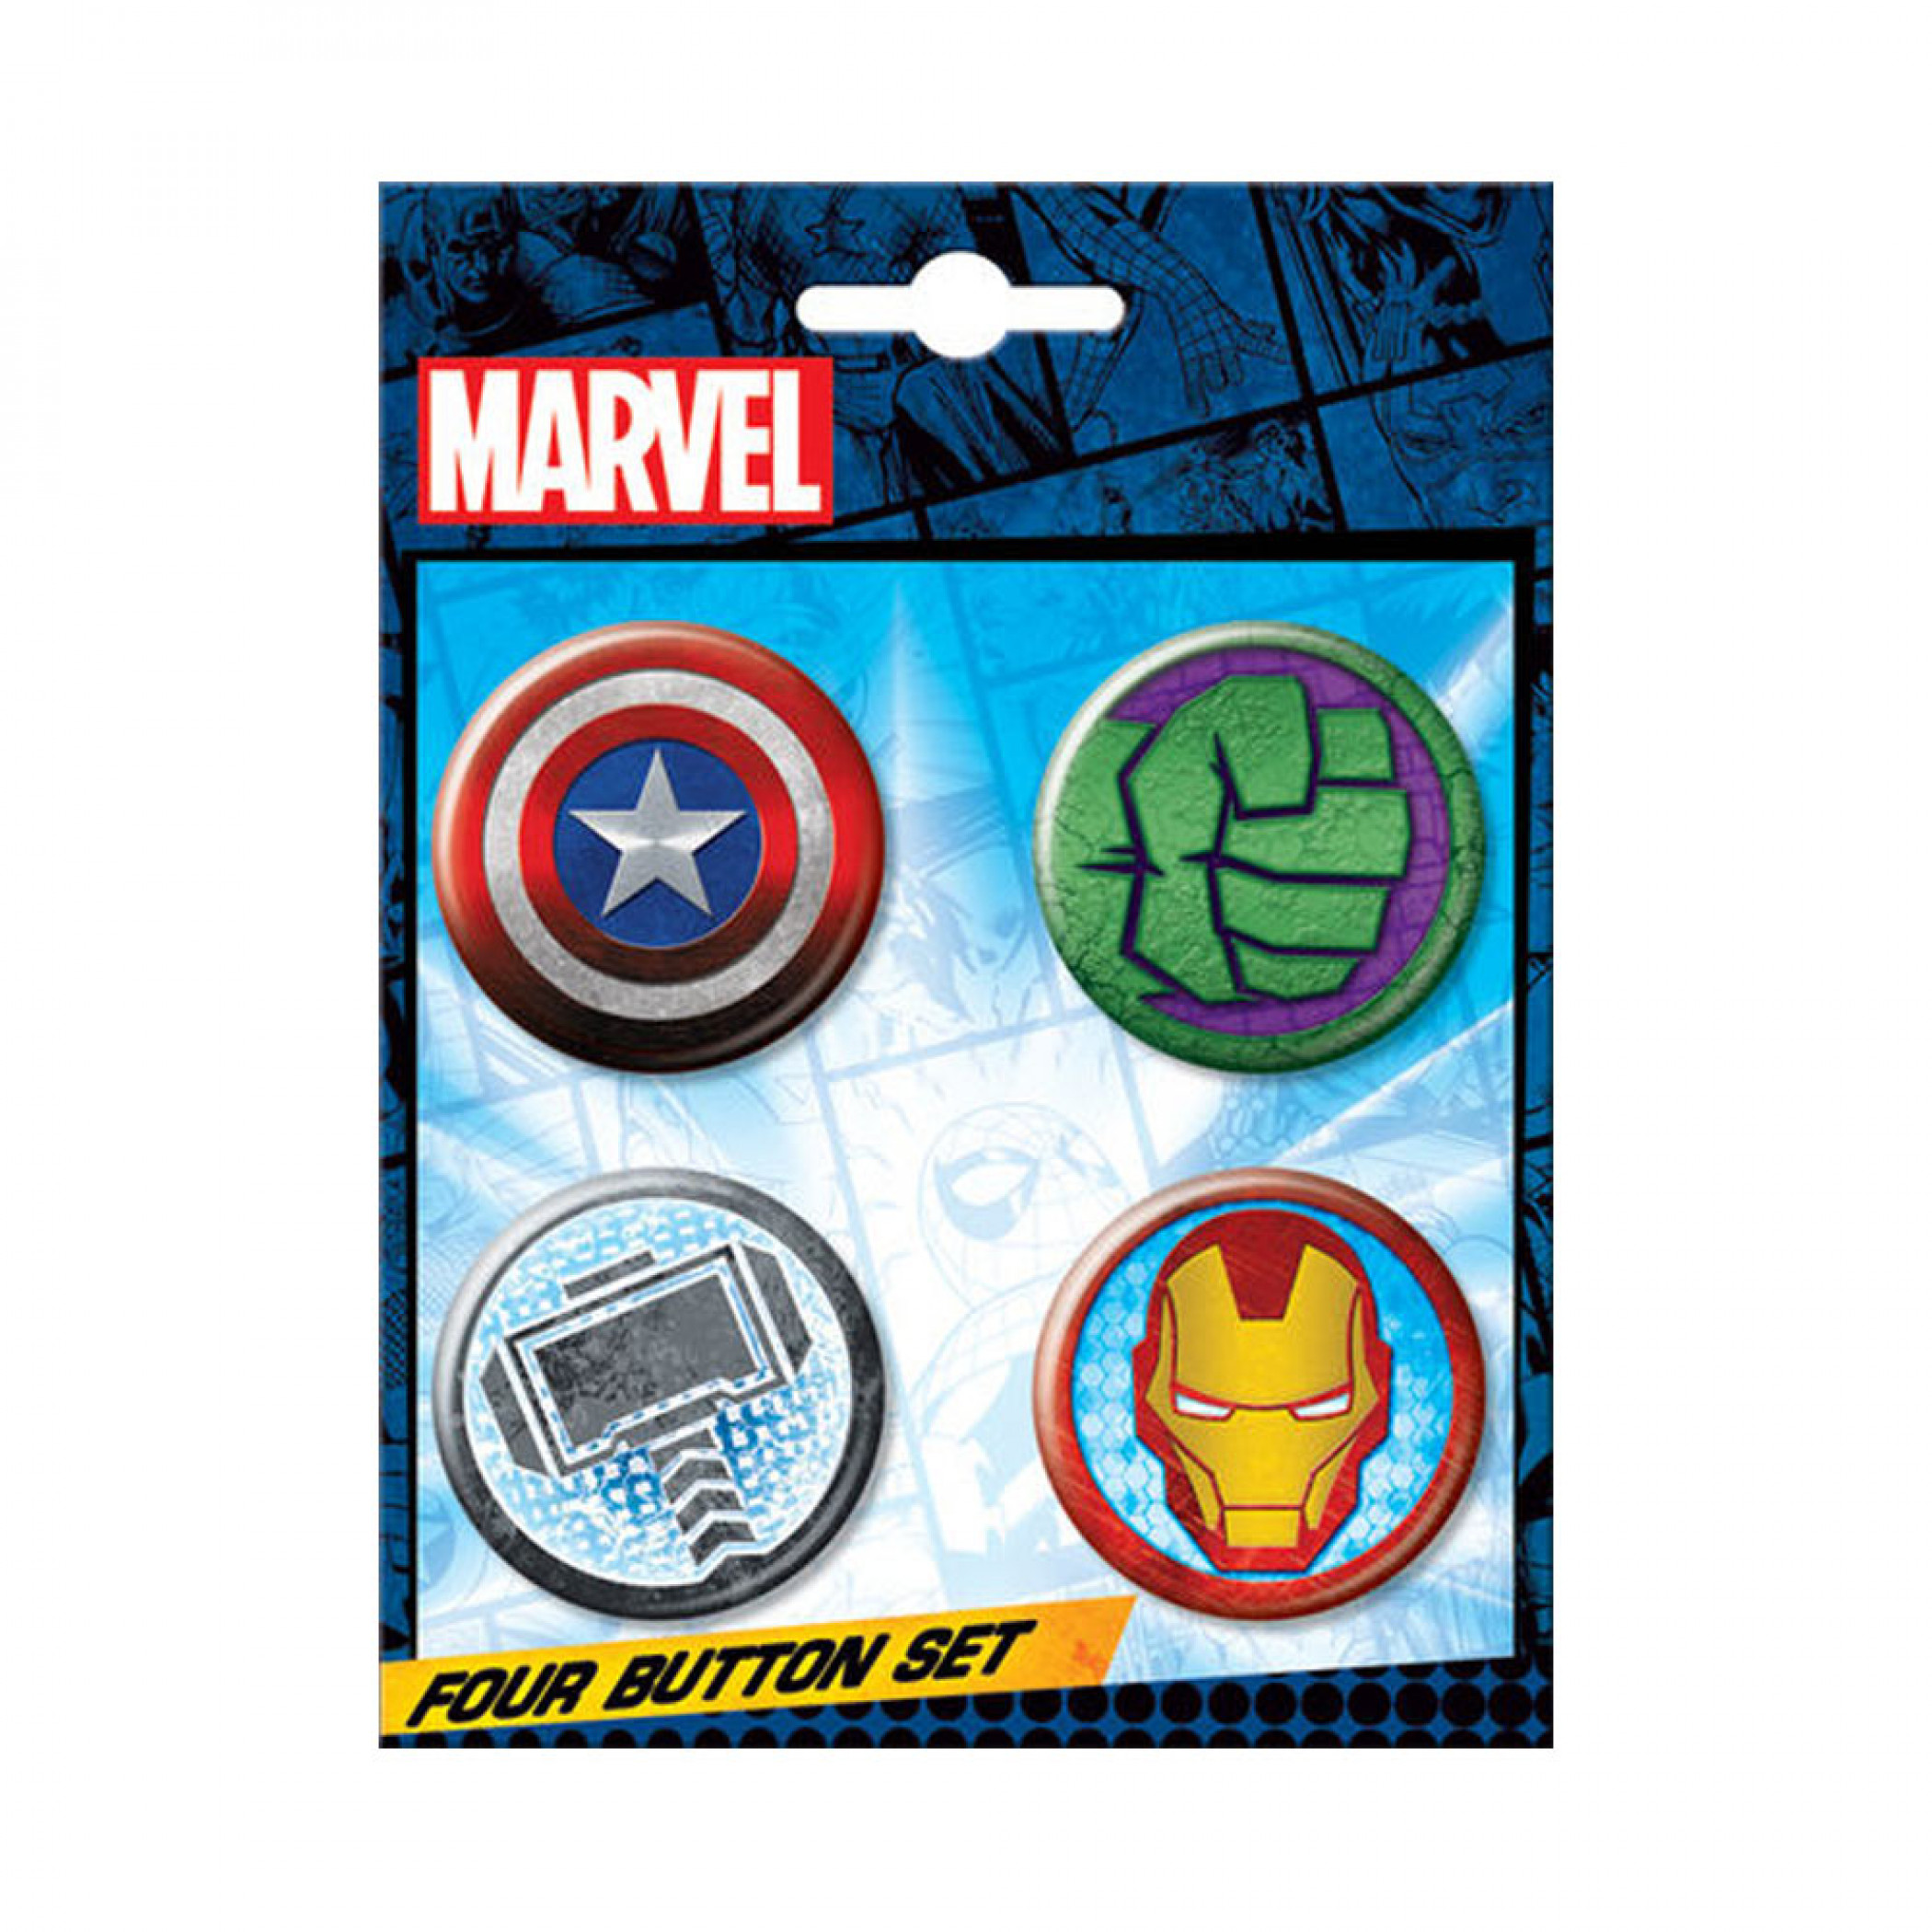 Avengers Logos 4-Piece Button Set